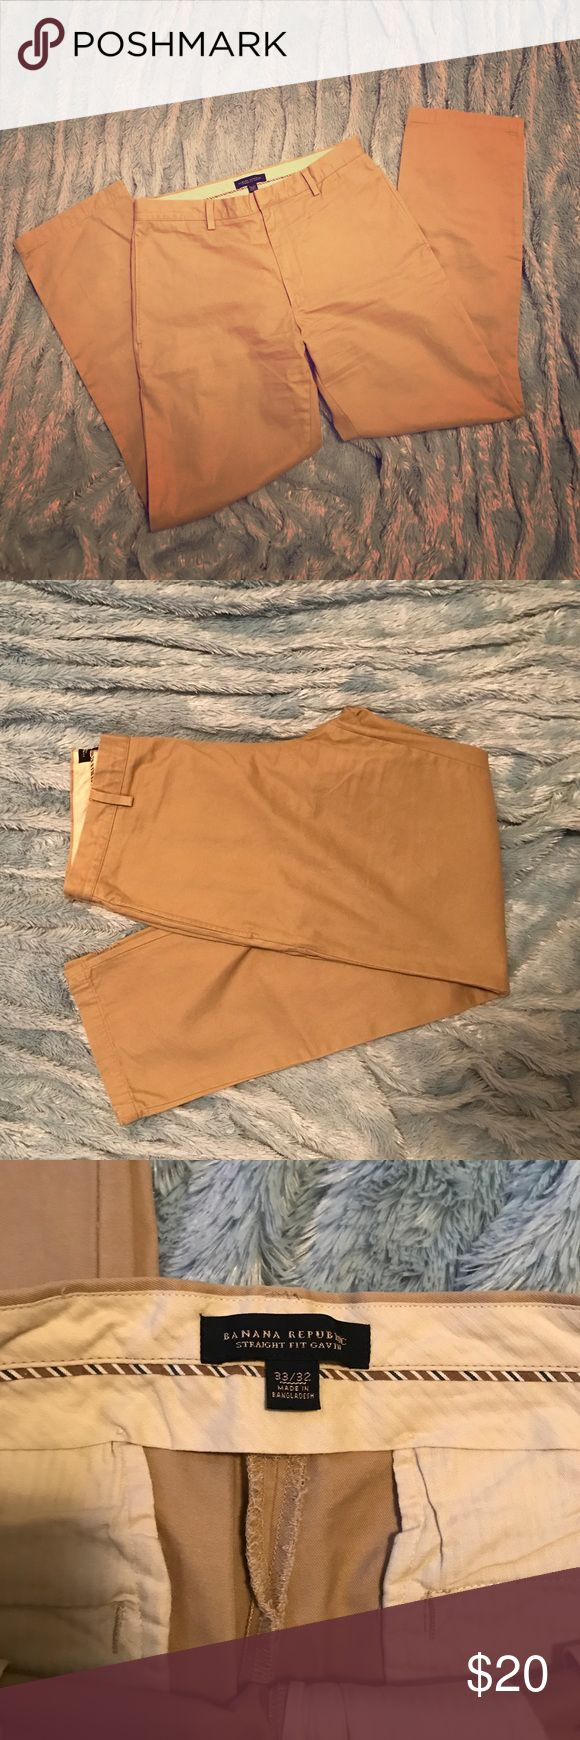 Men's khaki pants Men's Banana Republic khaki straight leg Gavin flat front pants. 33x32 Banana Republic Pants Chinos & Khakis